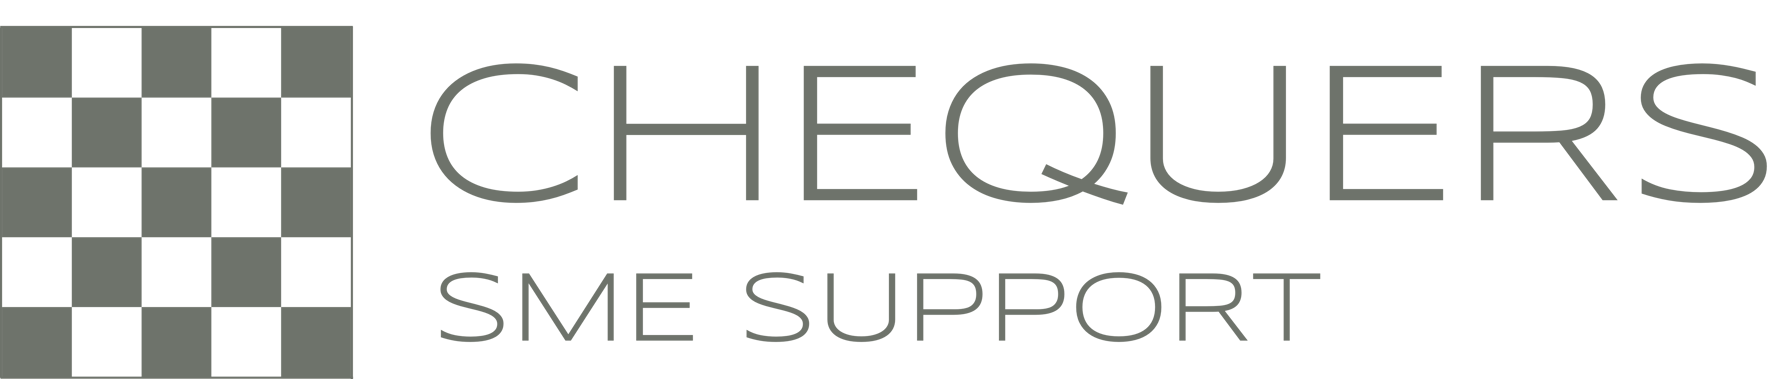 Chequers SME Support Logo